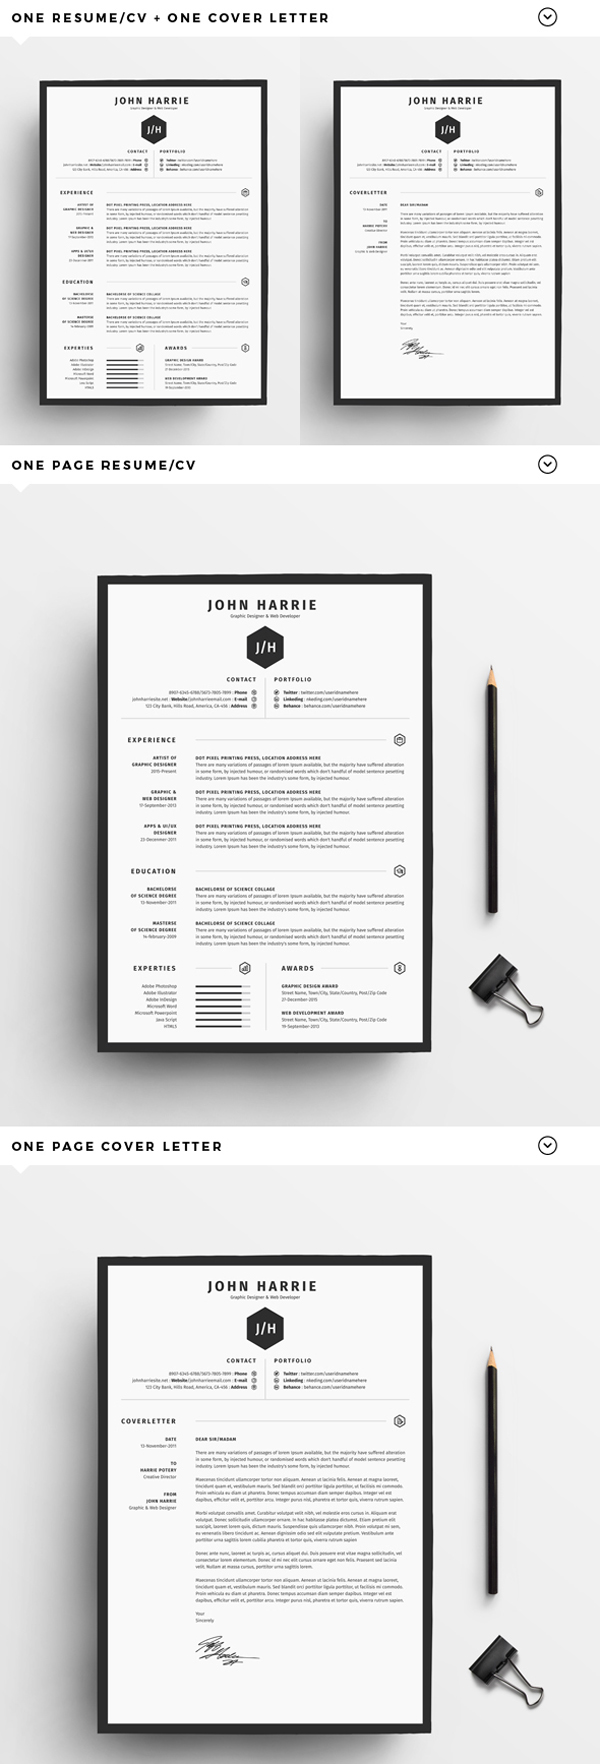 font for a cover letter